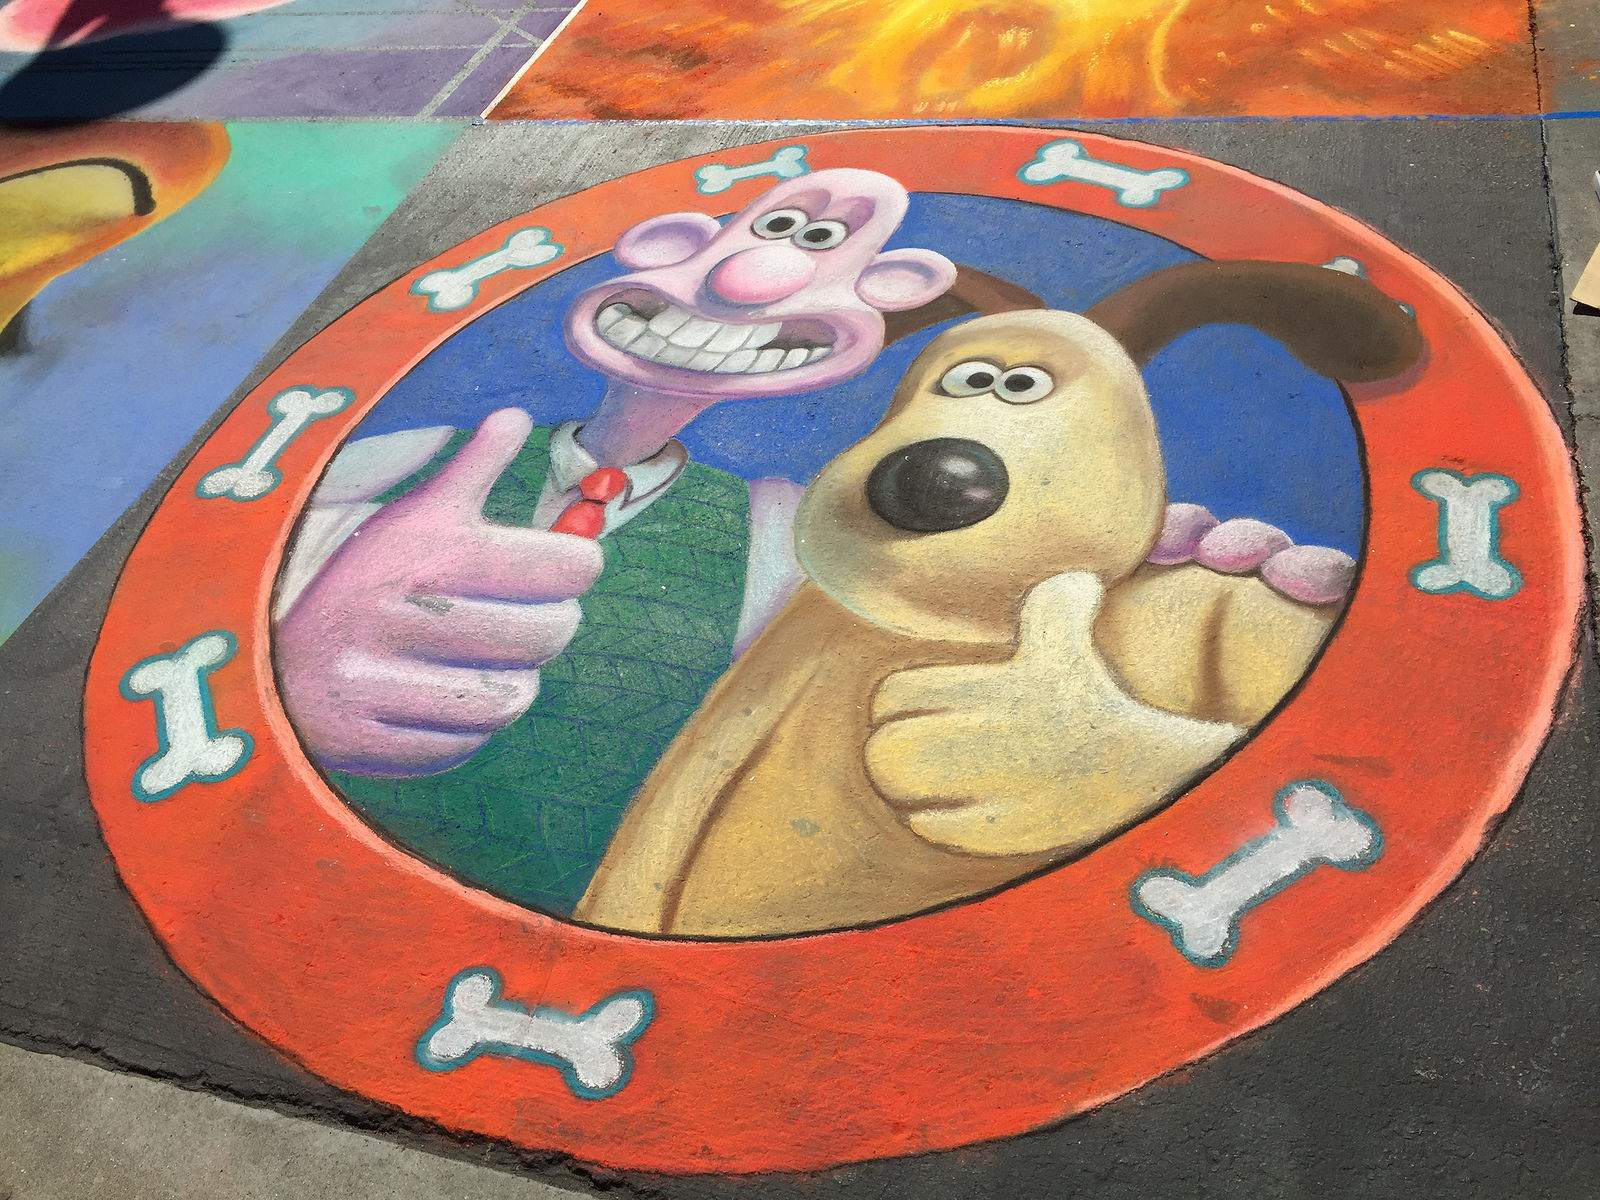 chalk festival Chalk Festival in Westlake Shopping Center